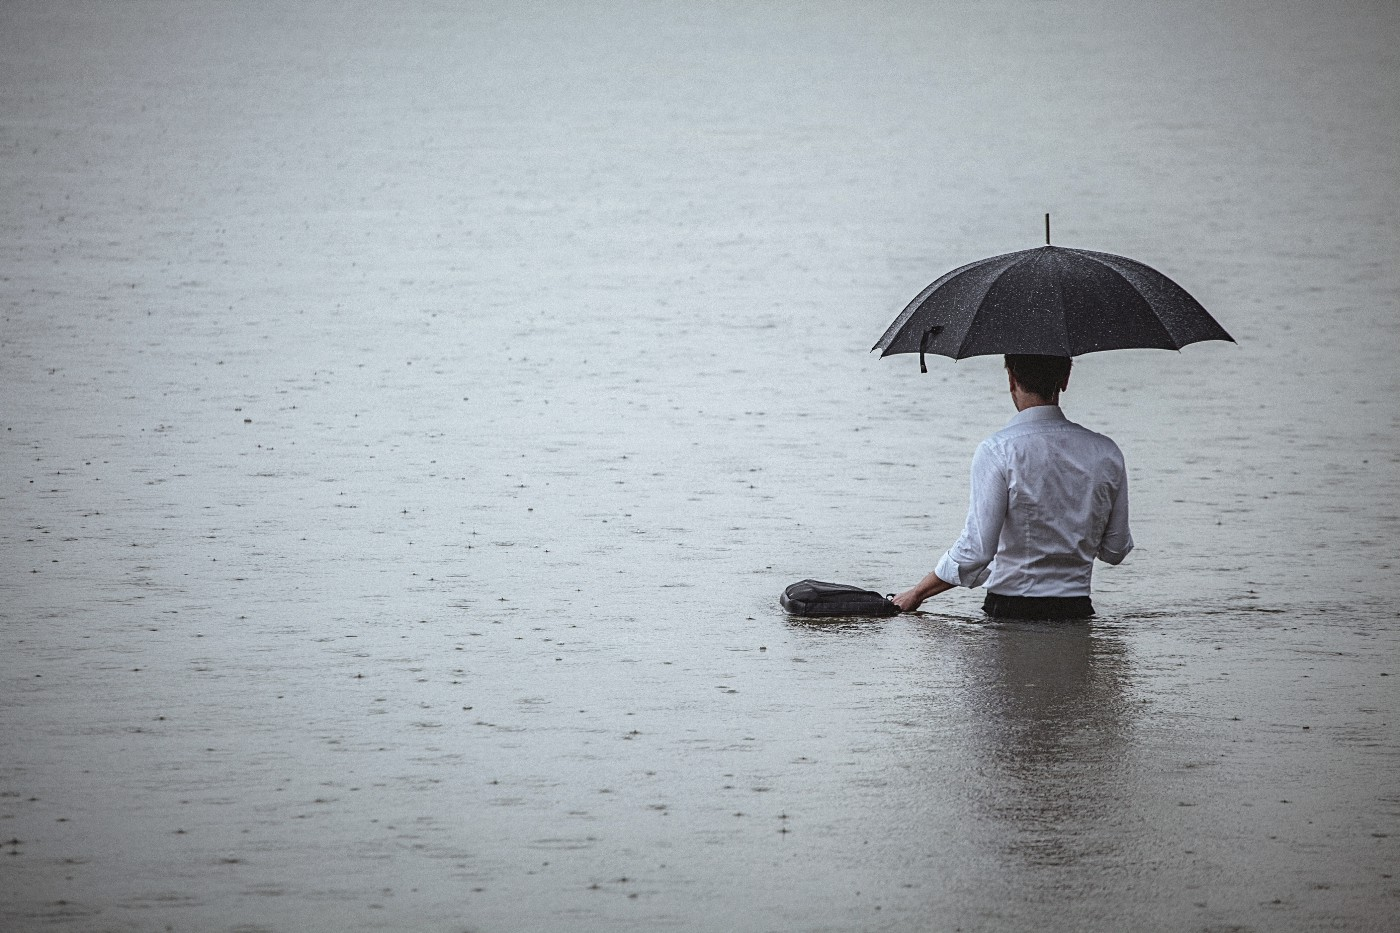 A man wearing a white shirt, holding up an umbrella and a briefcase, standing waist-deep in the water on a rainy day.